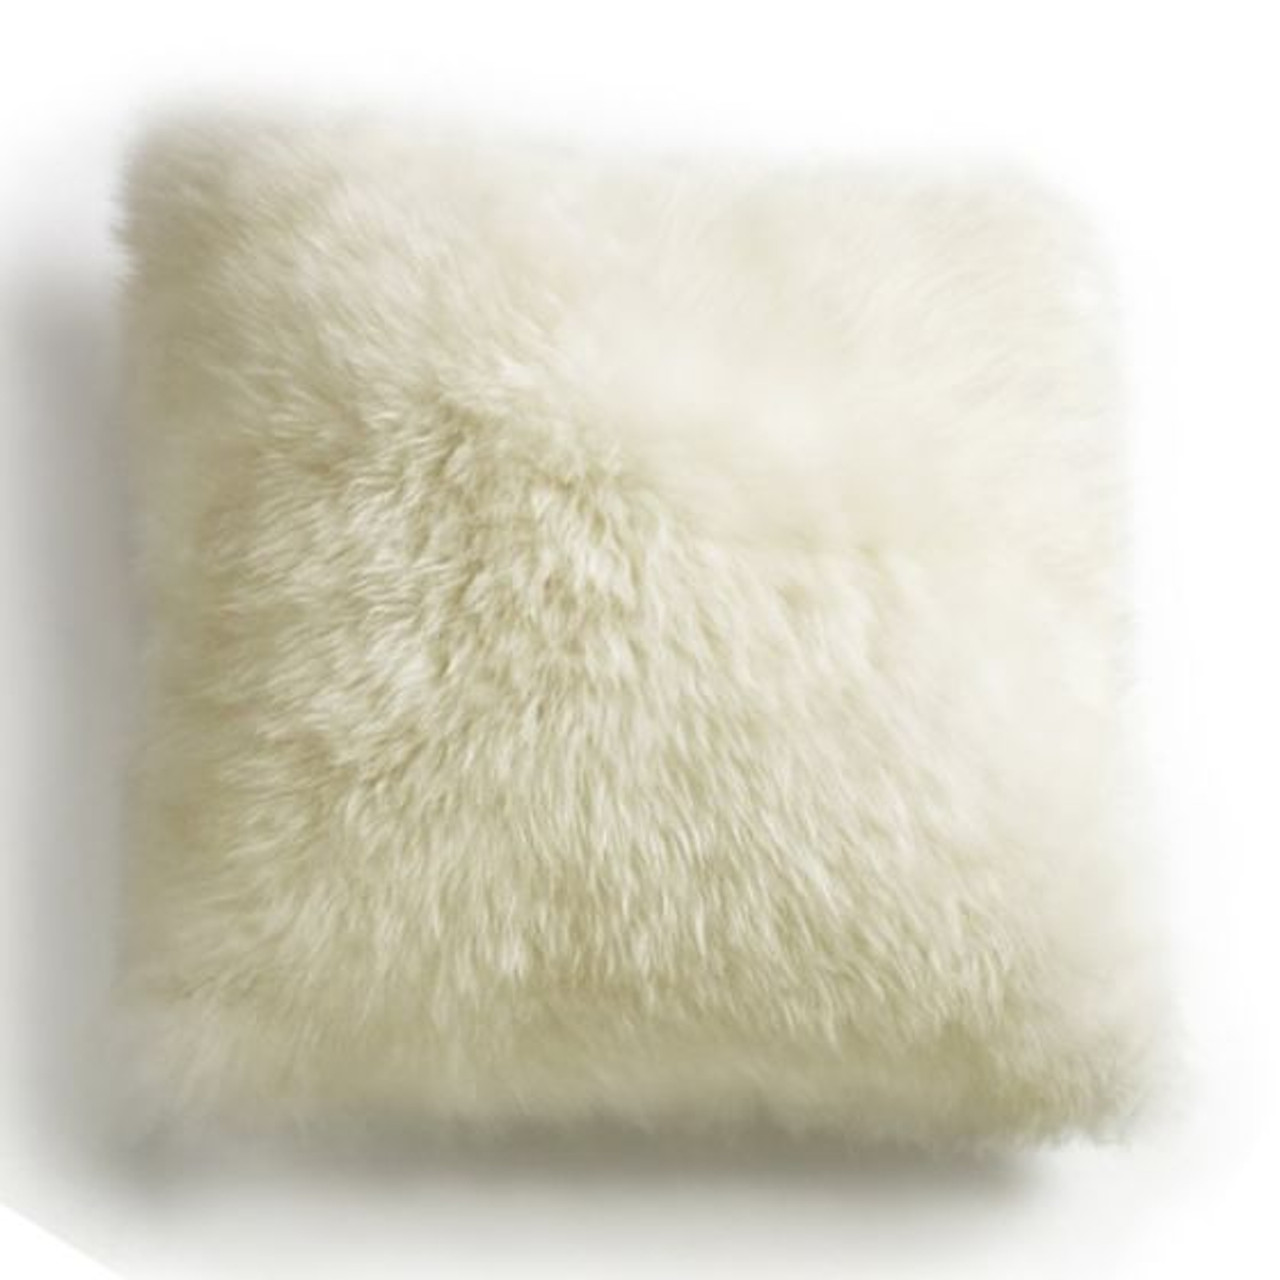 Auskin Cushion Long Wool Cushion Cover 40cm at Baby Barn Discounts The Auskin Sheepskin is a single-sided chair pads or sheepskin seat pads which are made from longwool with a cotton quilted backing.